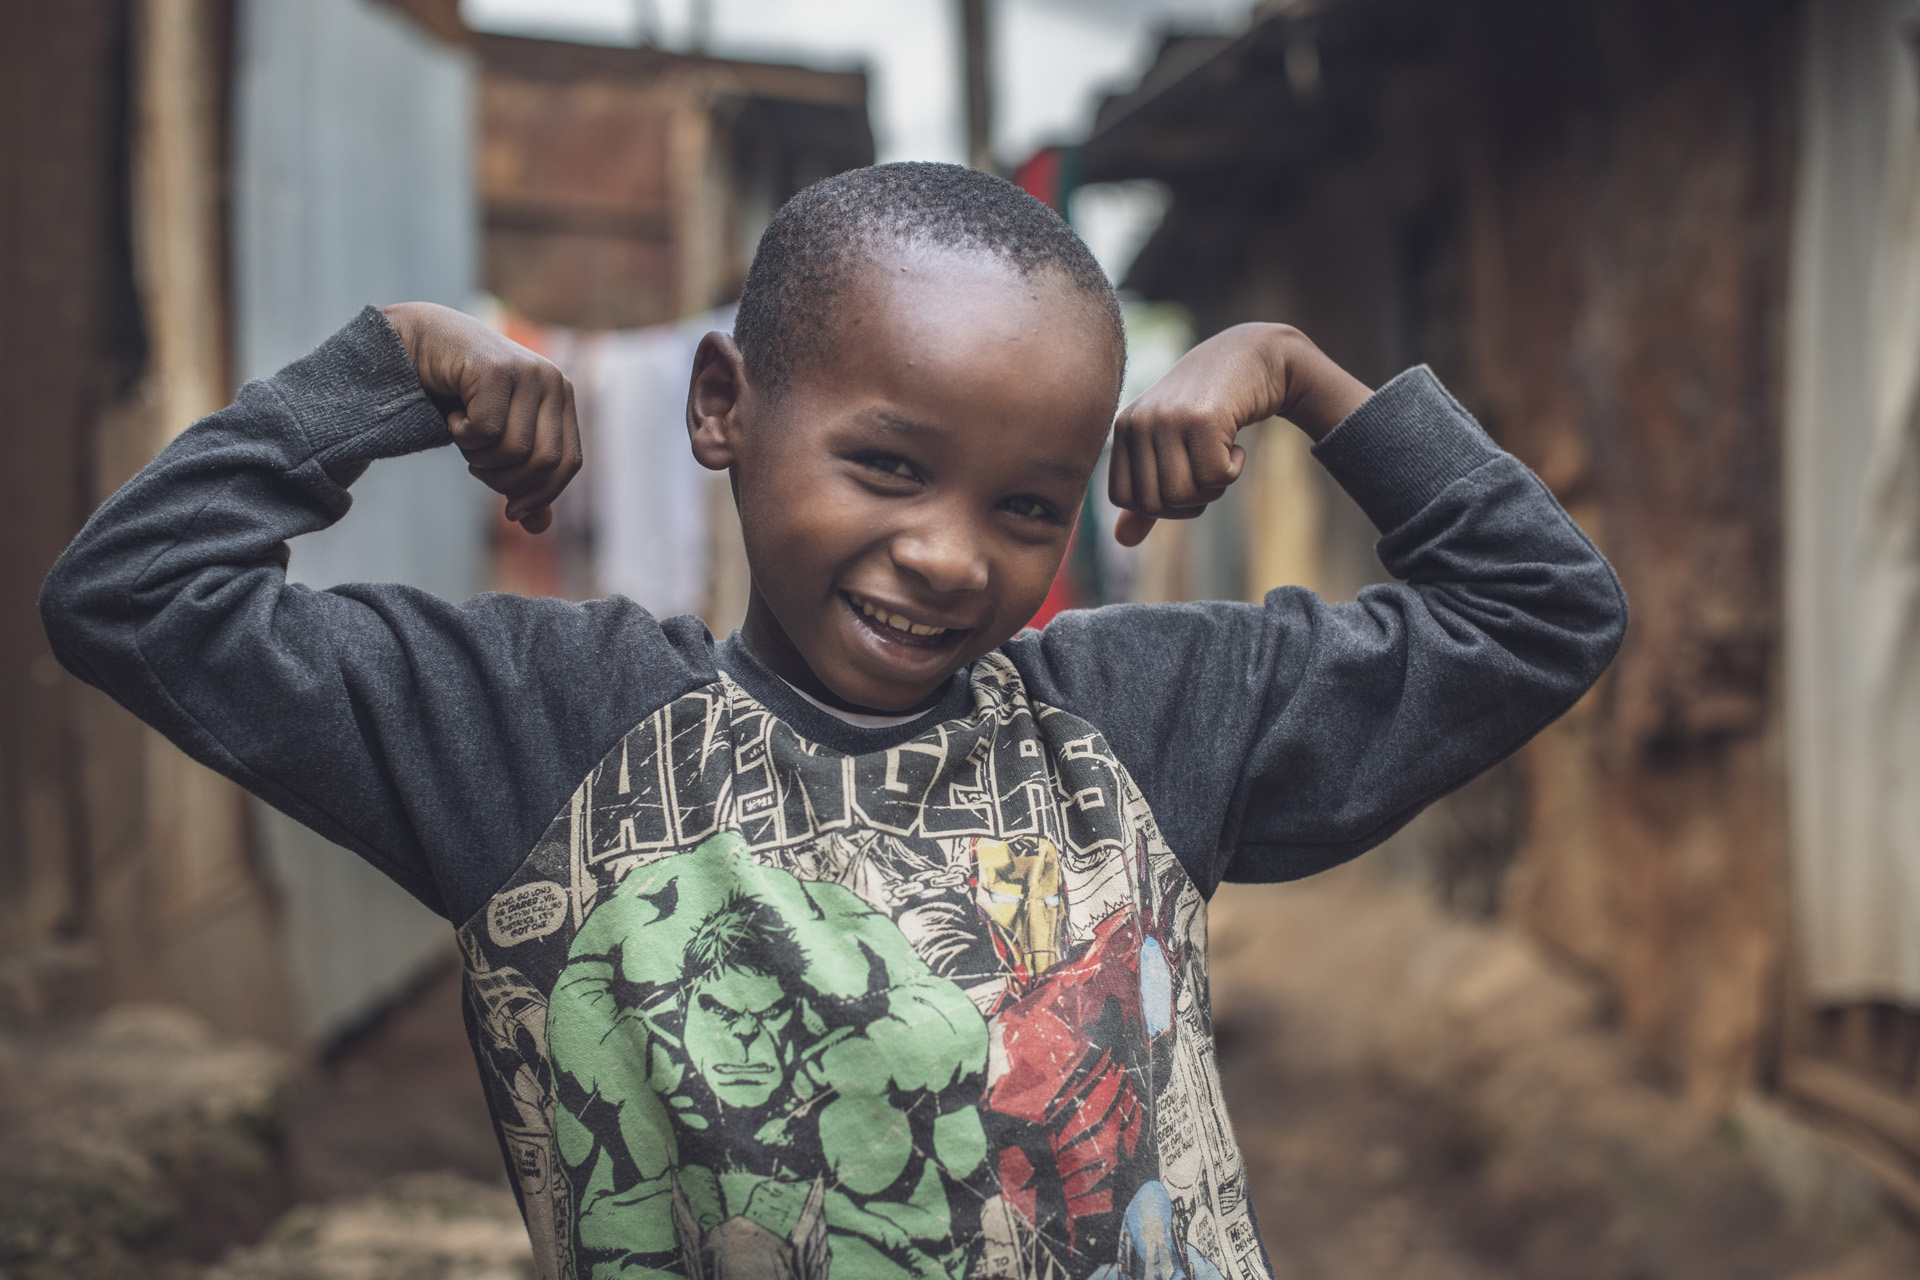 Denzel, 8, flexes his muscles to show how strong he's growing